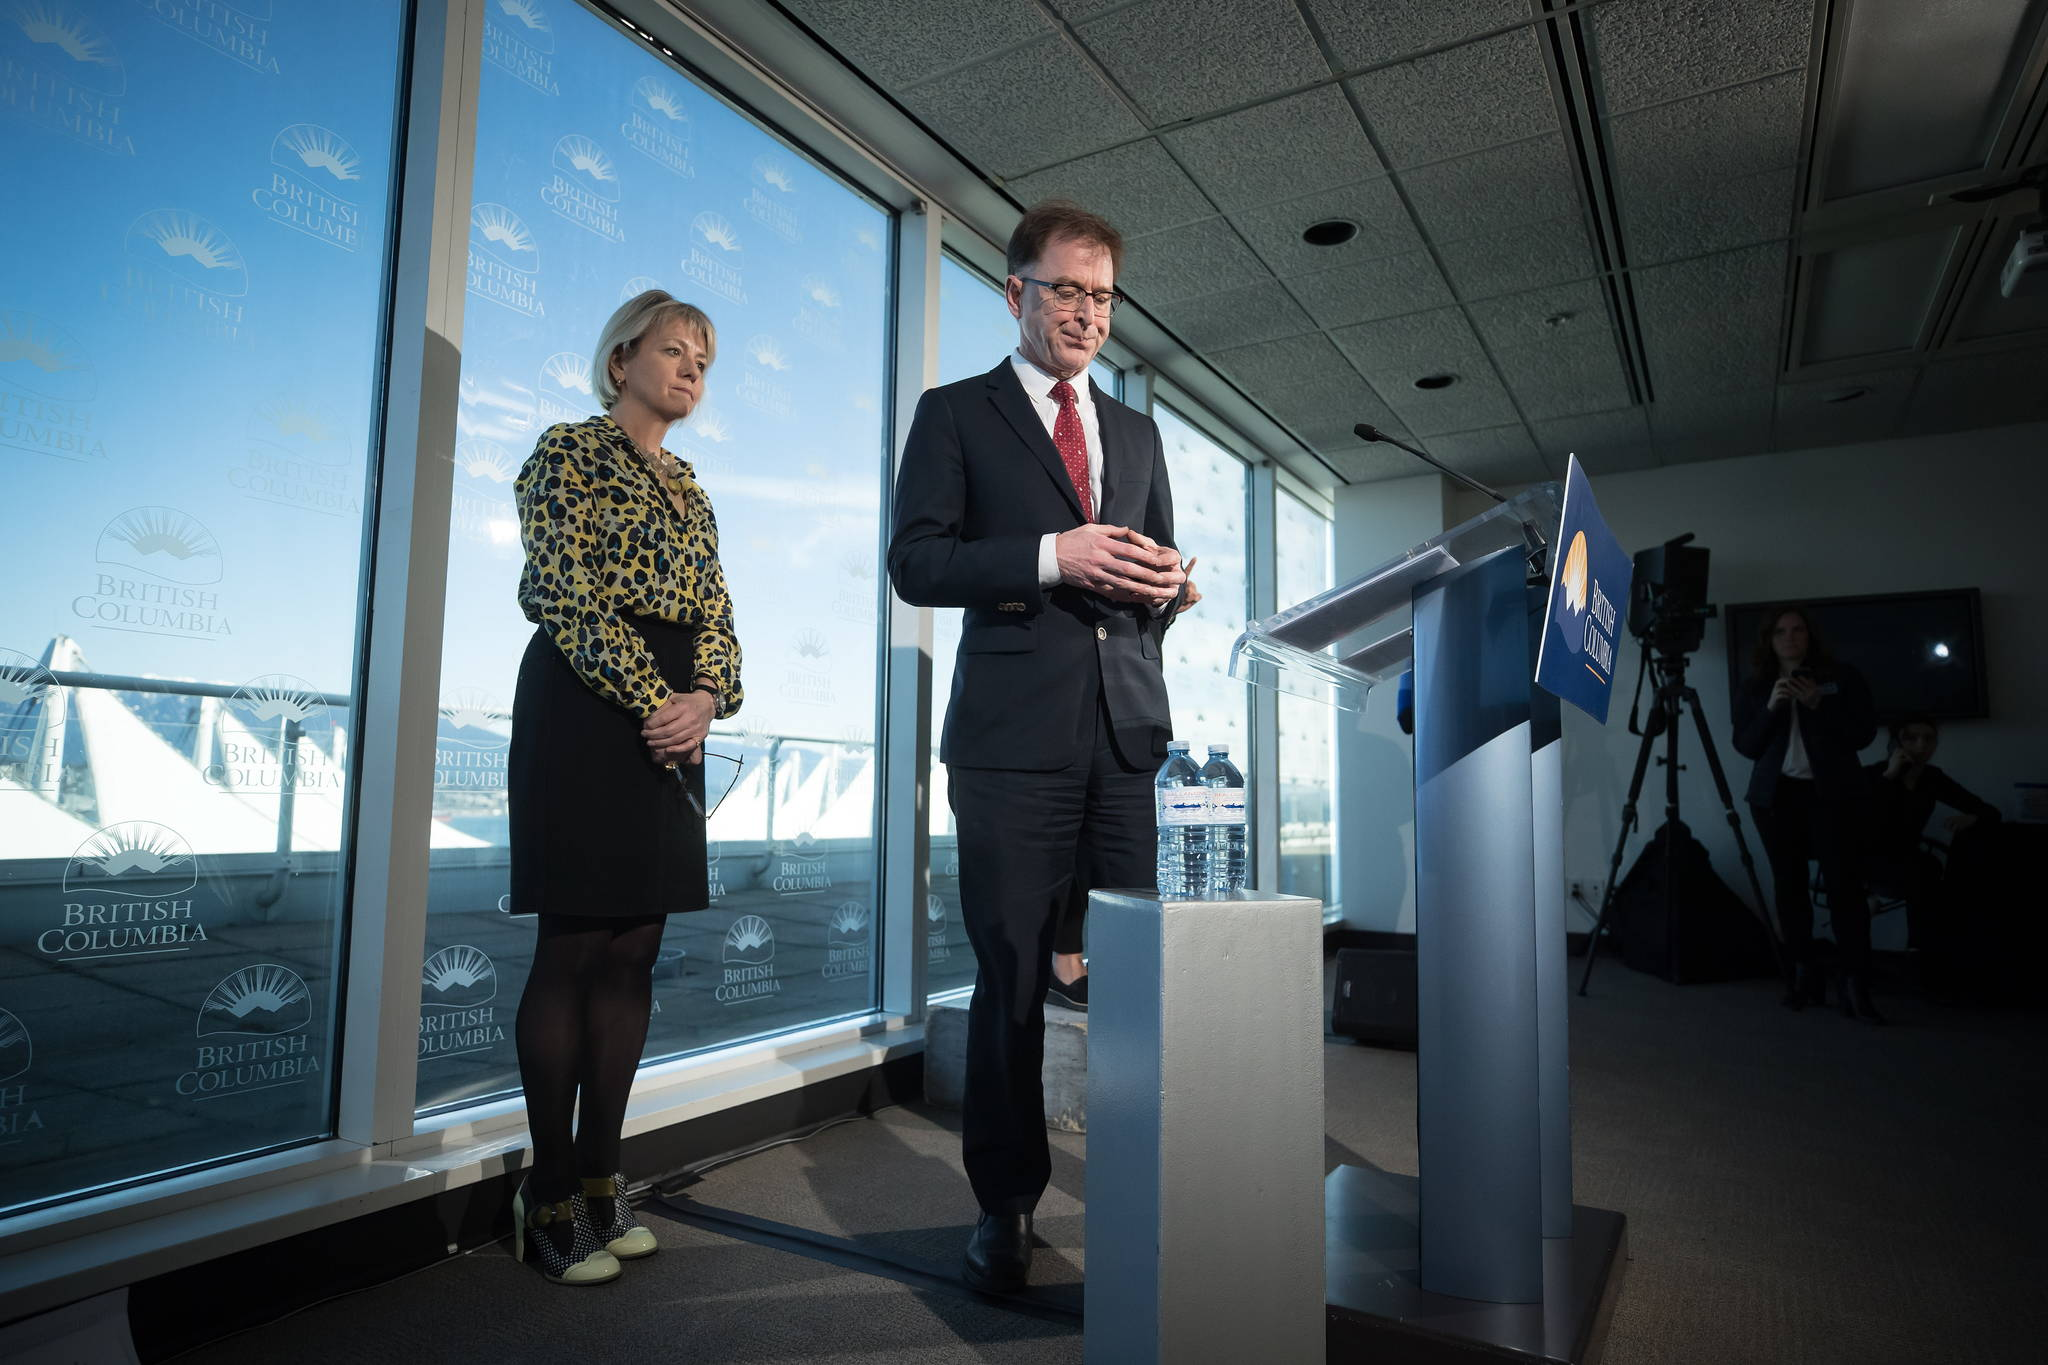 British Columbia provincial health officer Dr. Bonnie Henry, left, and B.C. Health Minister Adrian Dix pause during a news conference regarding the novel coronavirus COVID-19, in Vancouver, on Saturday, March 14, 2020. (THE CANADIAN PRESS/Darryl Dyck)